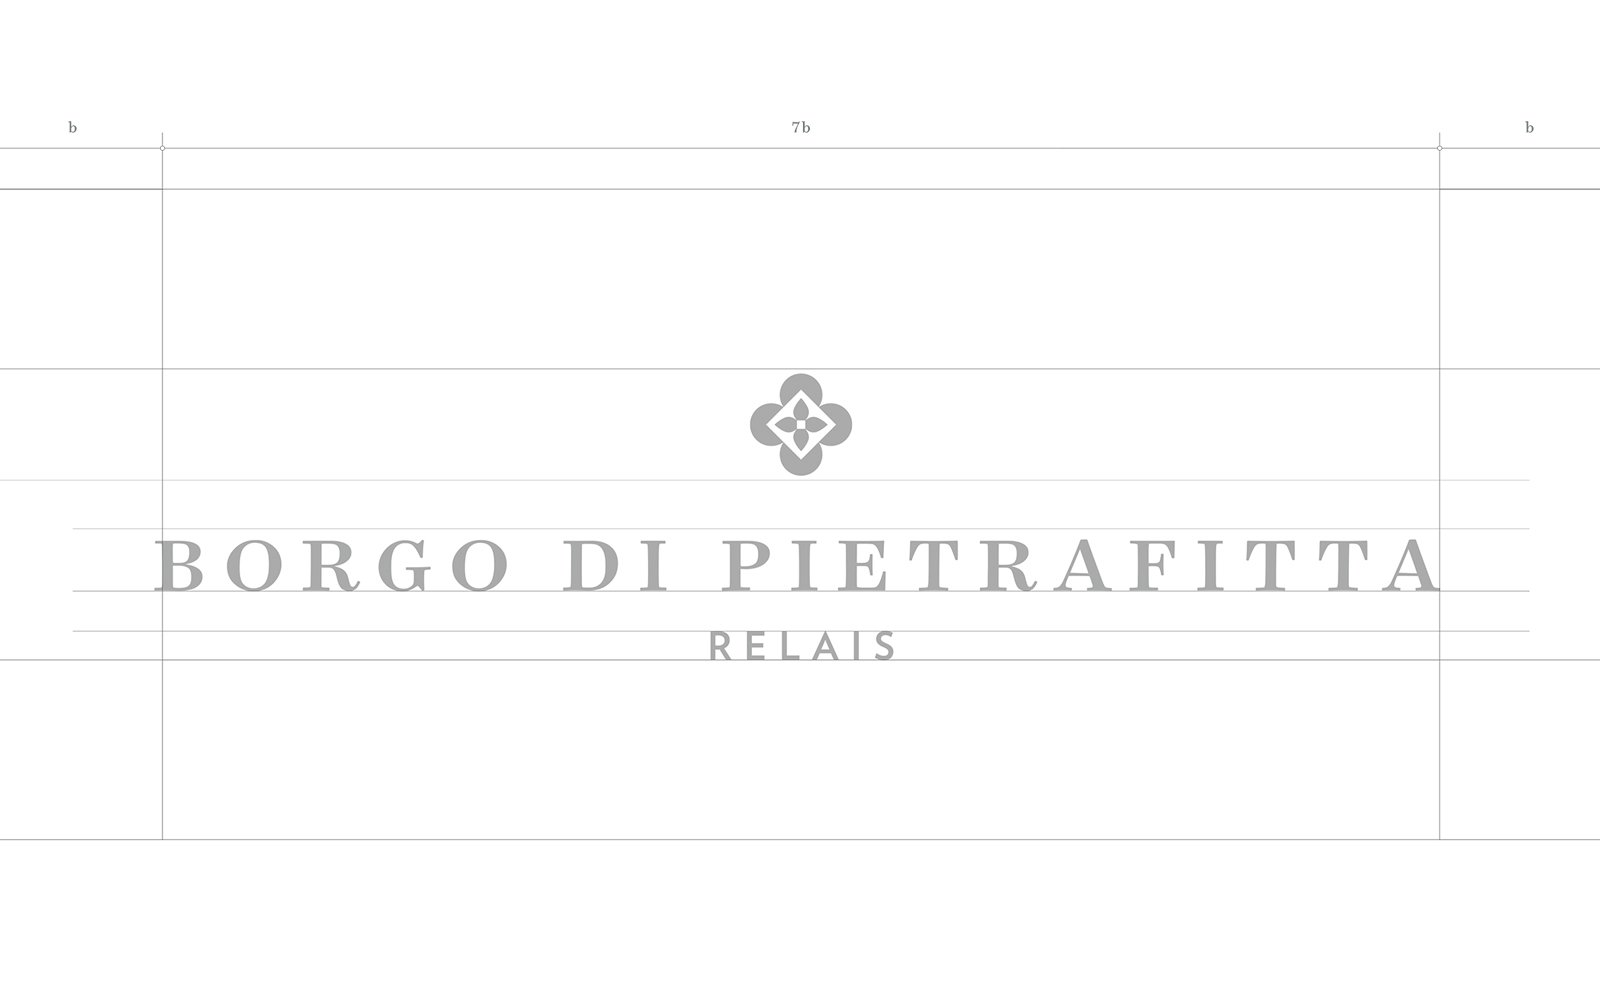 New image for the Borgo di Pietrafitta